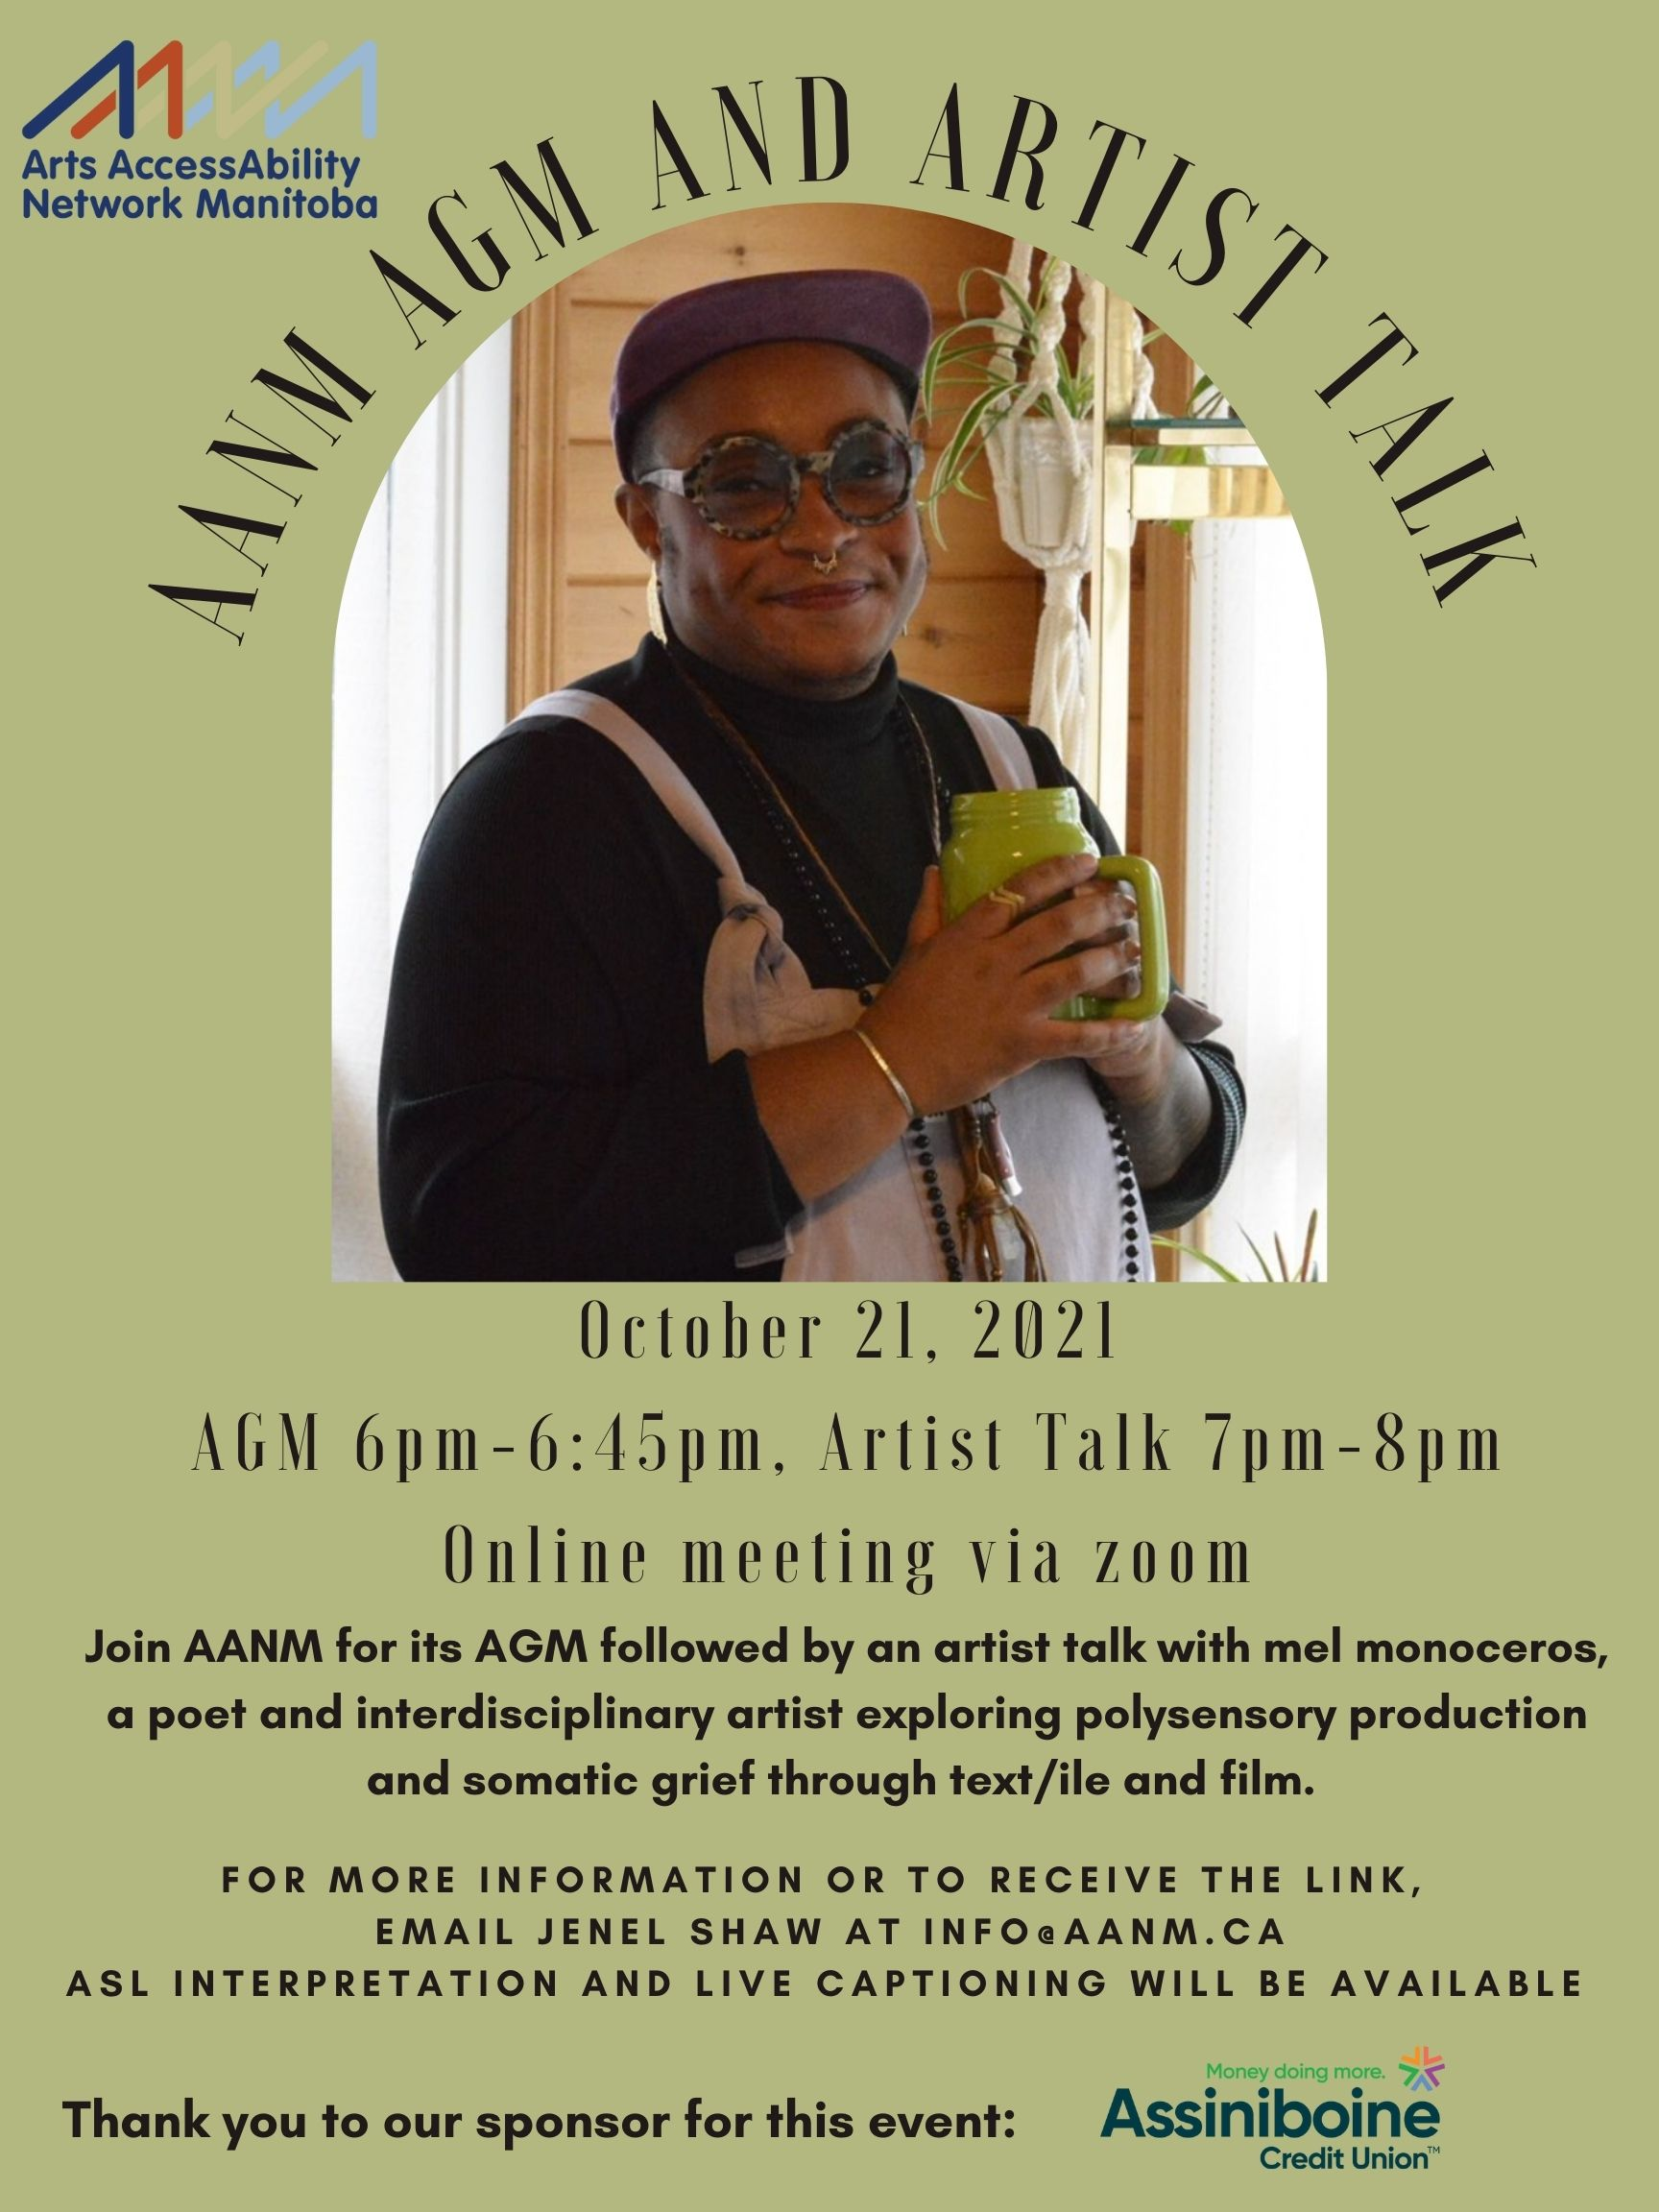 """The background is an olive green. In the left upper corner is AANM's logo with the words """"Arts AccessAbility Network Manitoba"""" in dark blue. In the middle of the poster is a photograph of mel monoceros. mel is a person of colour with dark skin. They are wearing a purple baseball cap, a black turtle neck shirt and white overalls. They are also wearing round glasses, a nose ring, long necklaces, a silver bracelet, a gold ring and is holding a green cup. mel is smiling at the camara and is standing in front of a wooden wall with a plant hanging behind them. In an arc above the image is the following text in black """"AANM AGM AND ARTIST TALK"""". Below the image is the following text in black """"October 21, 2021 AGM 6pm-645pm, Artist Talk 7pm-8pm Online meeting via zoom. Join AANM for its AGM followed by an artist talk with mel monoceros, a poet and interdisciplinary artist exploring polysensory production and somatic grief through text/ile and film. For more information or to receive the link, email Jenel Shaw @ info@aanm.ca ASL interpretation and live captioning will be available. Thank you to our sponsor for this event: Money doing more, Assiniboine Credit Union"""". Next to the last line is the Assiniboine Credit Union."""